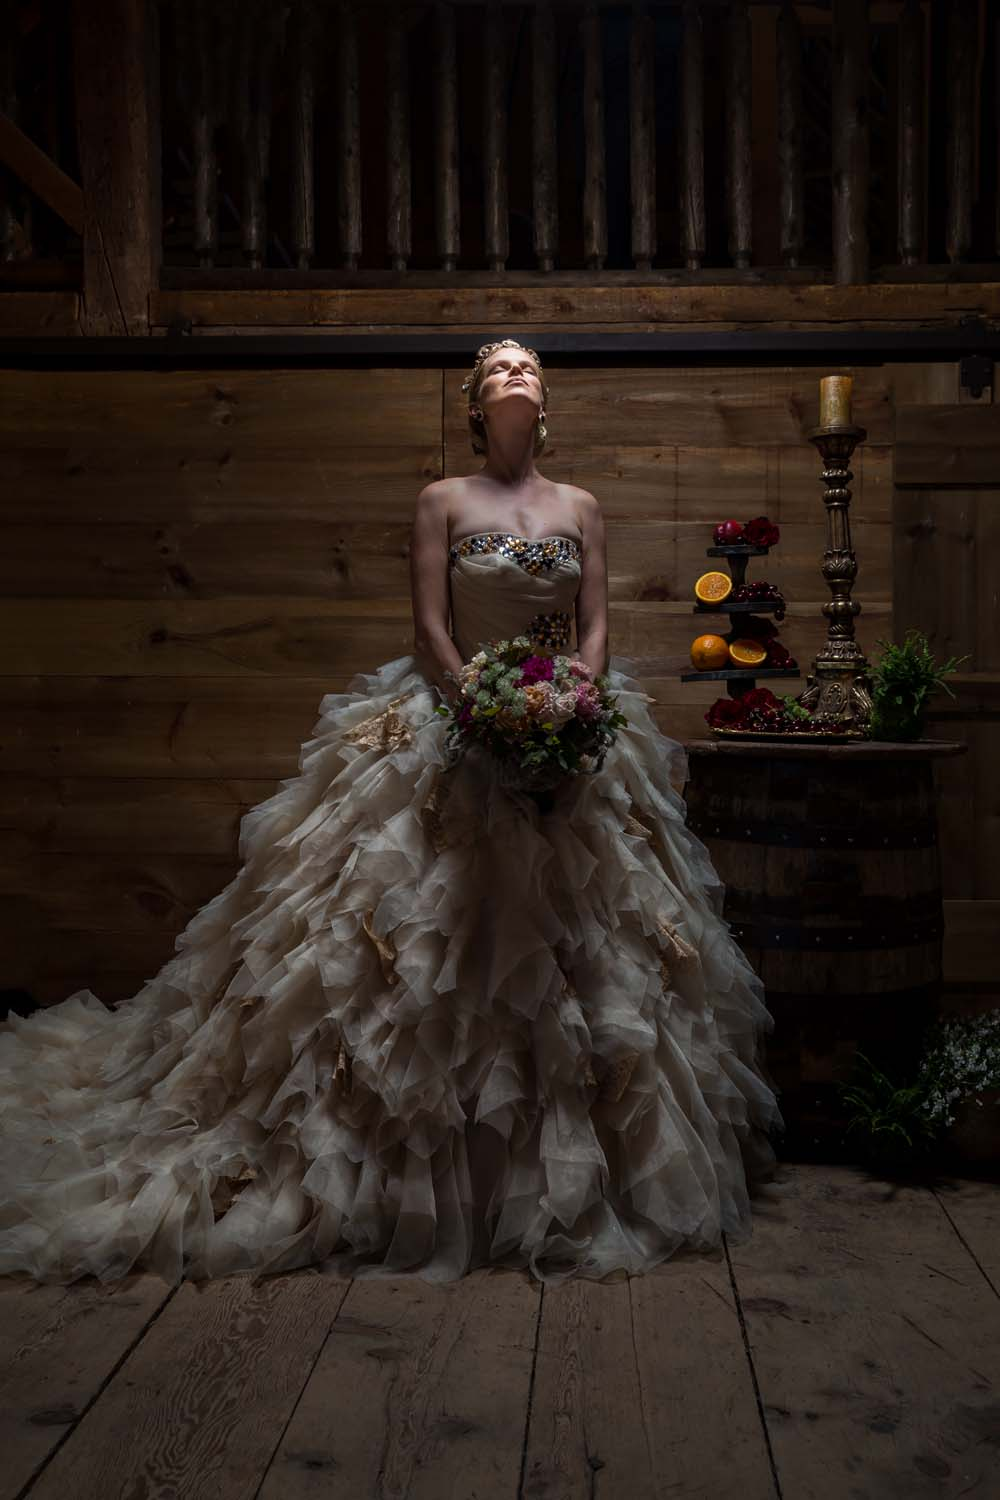 This Styled Shoot Was Inspired By Medieval Royalty - Upward gaze